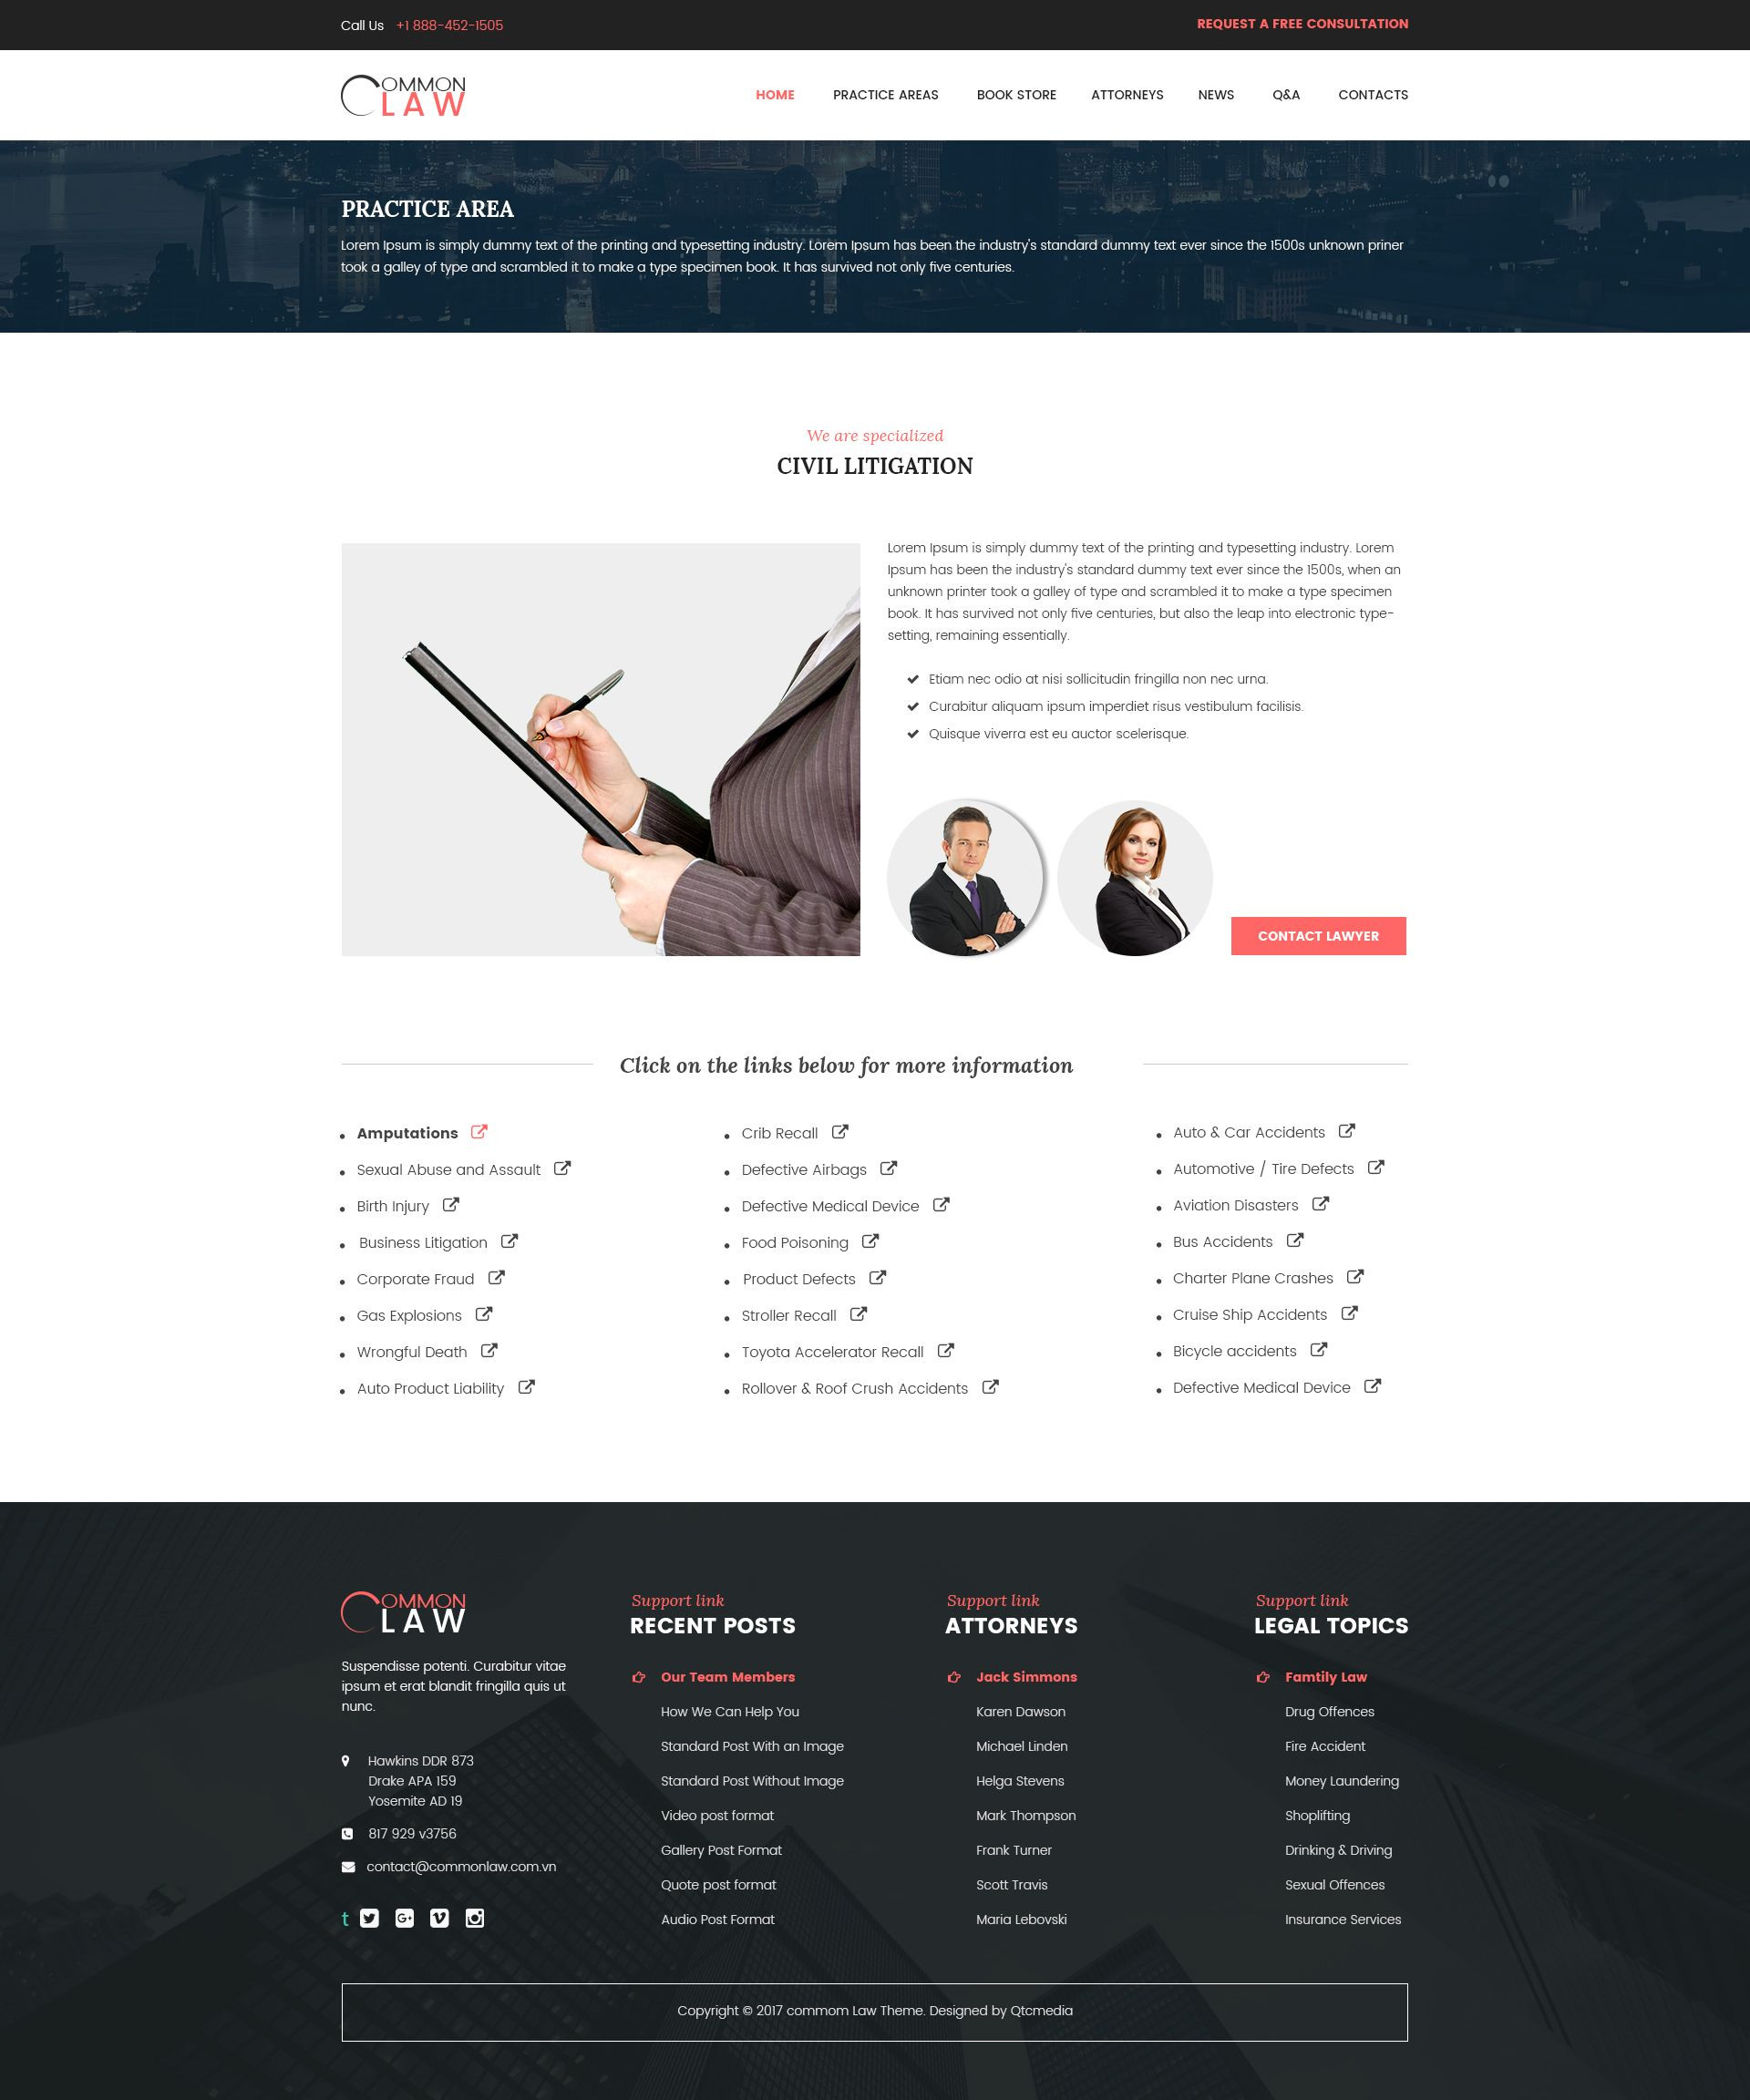 CommonLaw - Attorney & Lawyer PSD Template | Psd templates, Lawyer ...